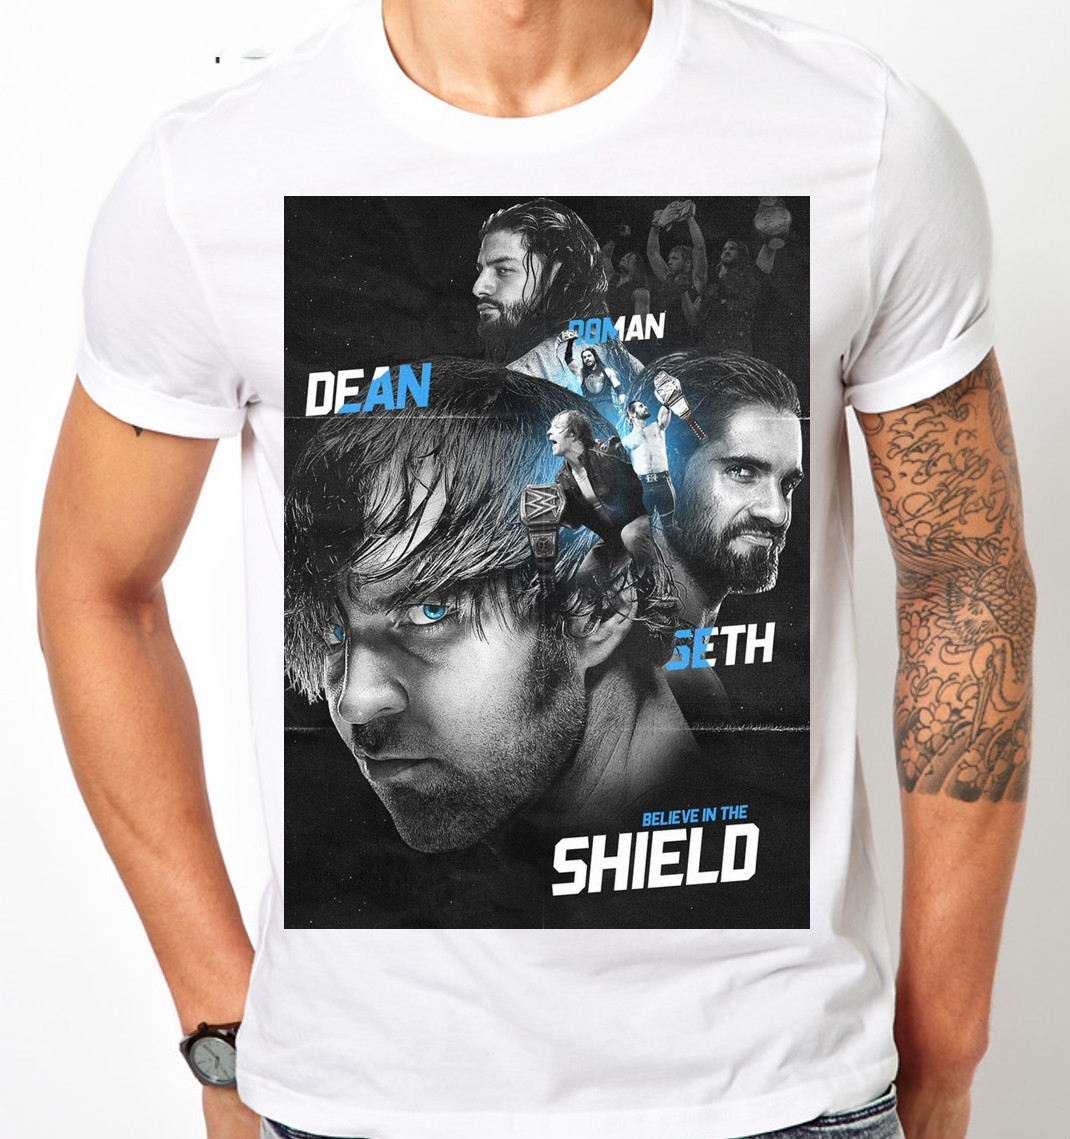 THE SHIELD REUNITED ROMAN REIGNS DEAN AMBROSE SETH ROLLINS MENS KIDS T Shirt 100% Cotton Short Sleeve O-Neck Tops Tee Shirts